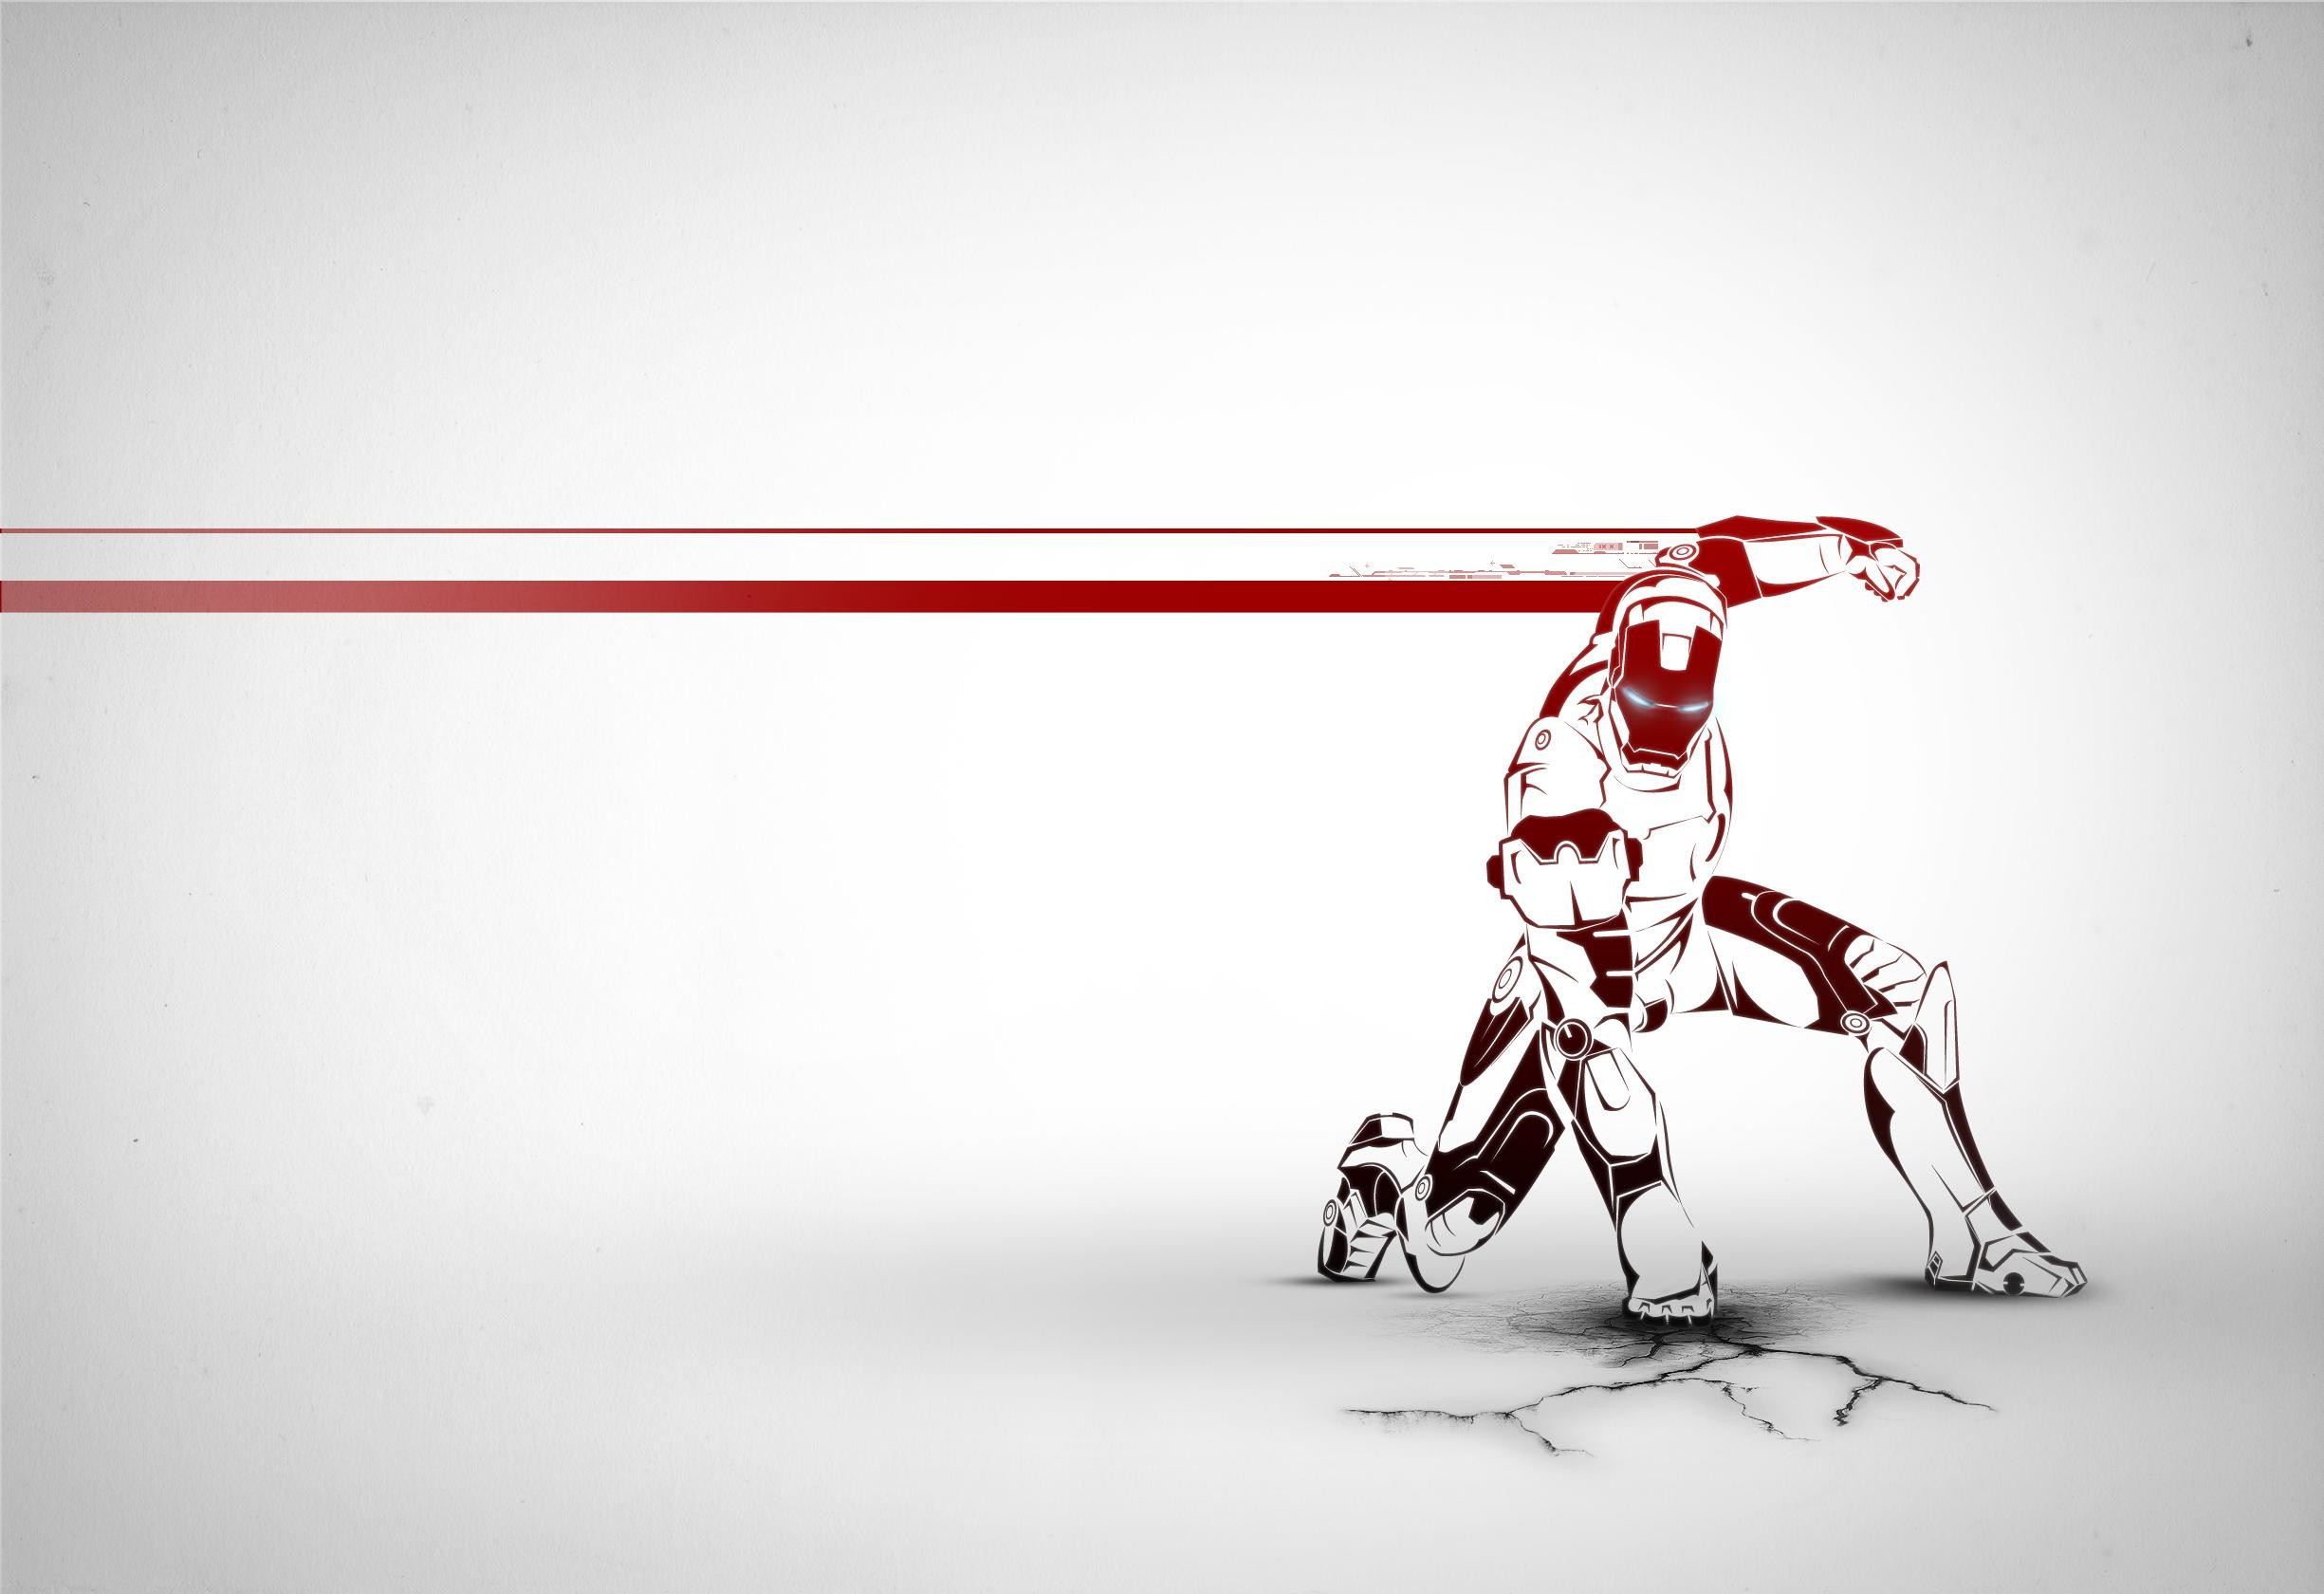 2450x1680 Ironman Wallpaper on Behance